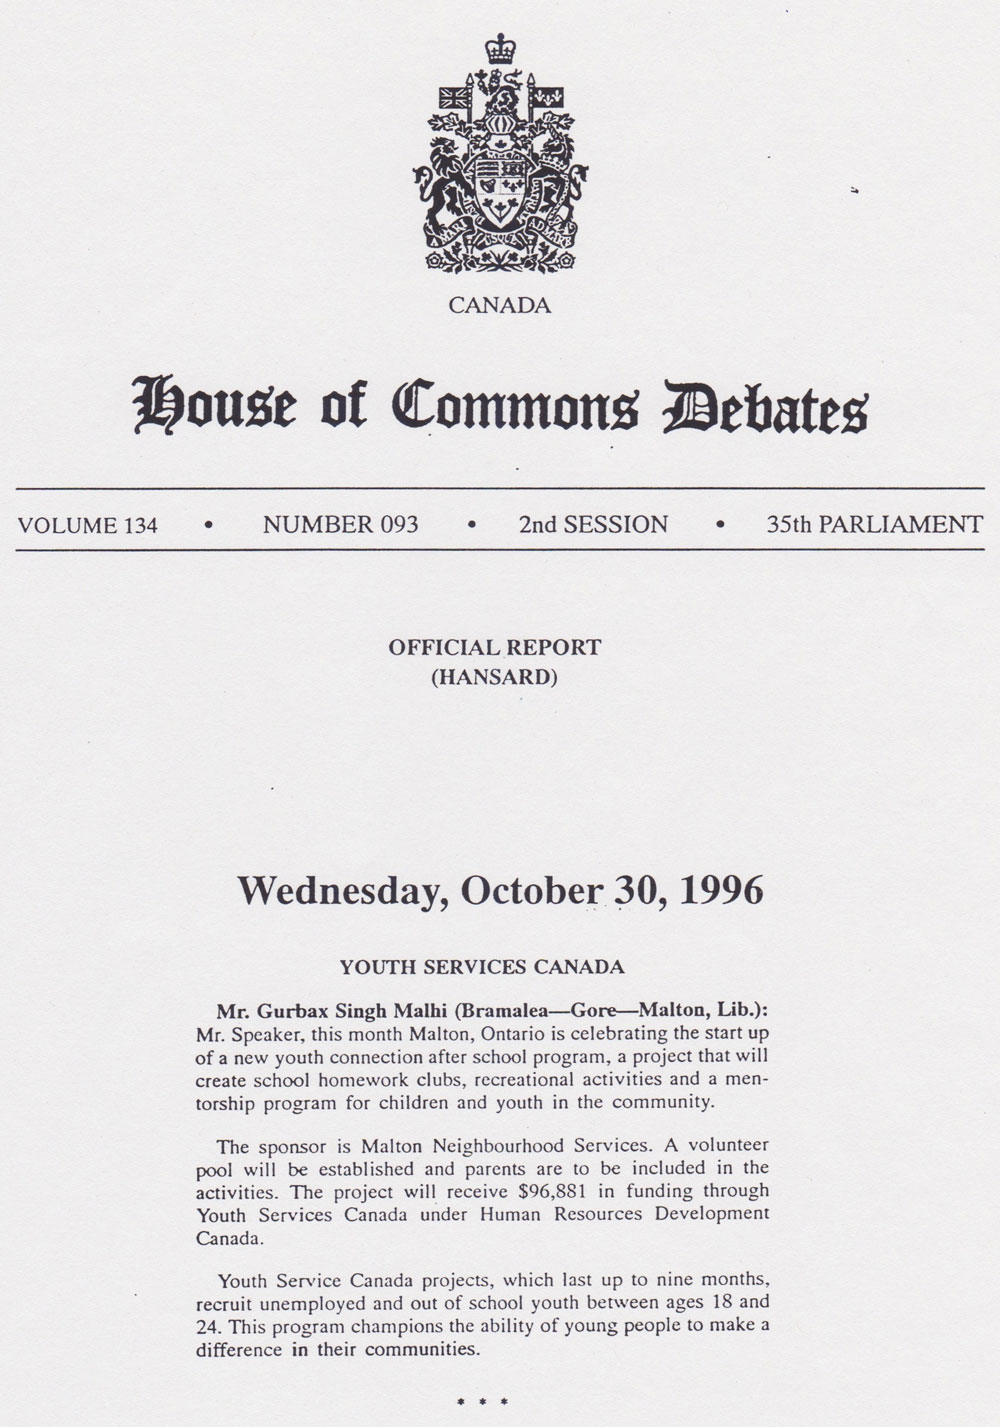 10/30/96 Youth Services Canada